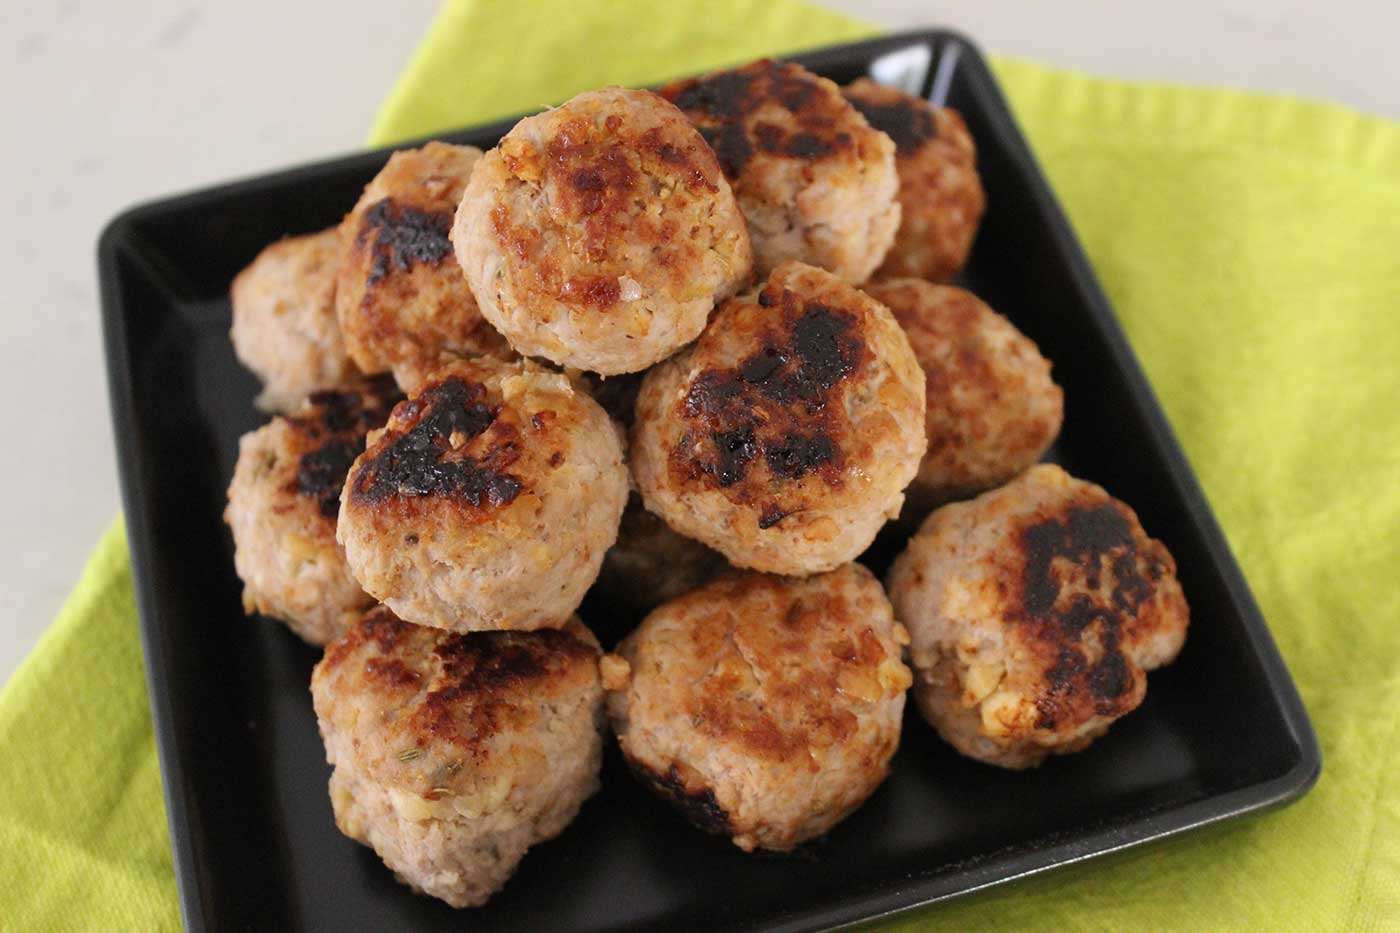 Pork-Apple-&-Fennel-Meatballs-with-Apple-Cider-Dip-Thermomix-Recipe